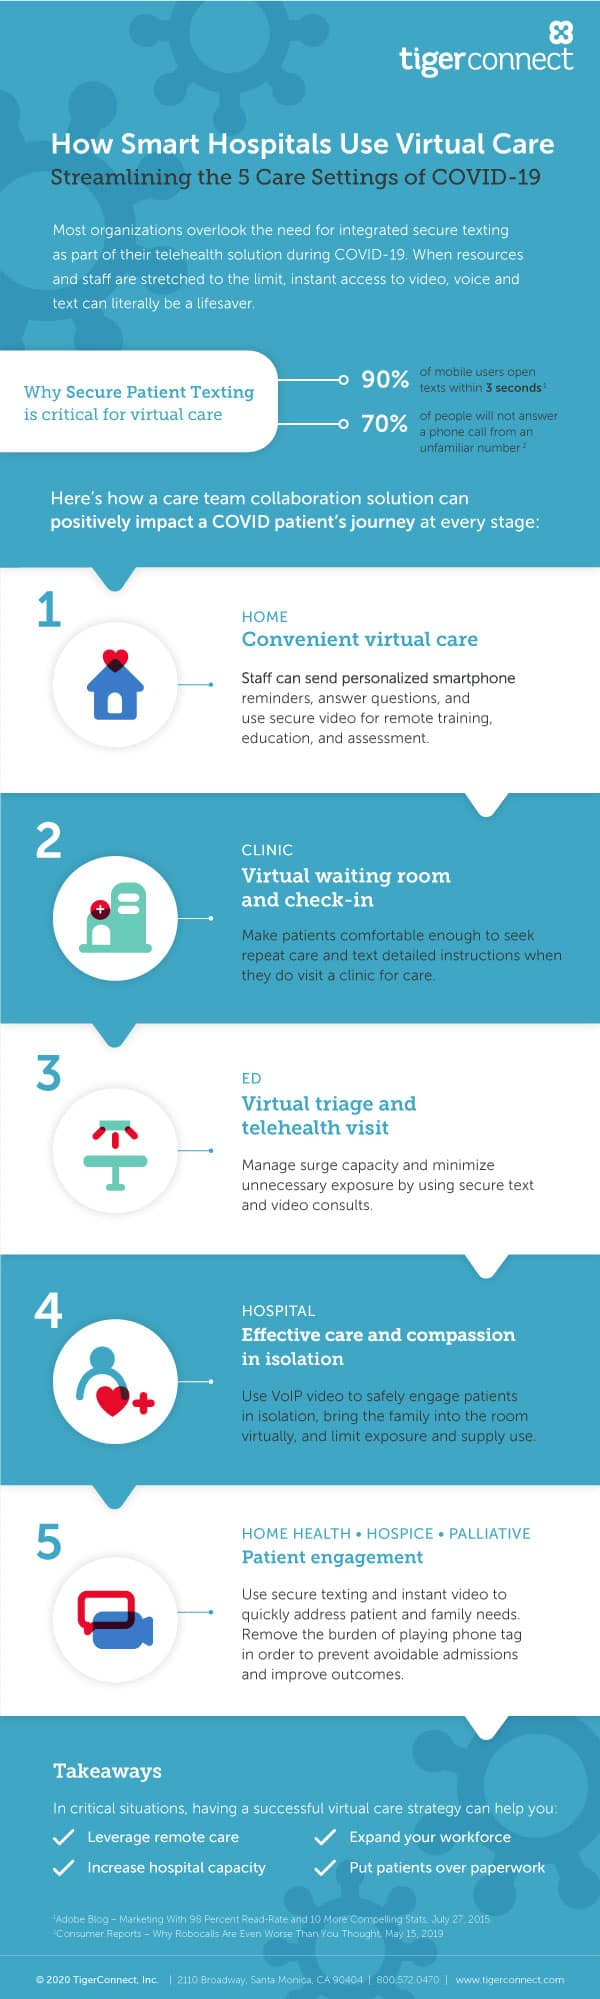 Infographic: How Smart Hospitals Use Virtual Care